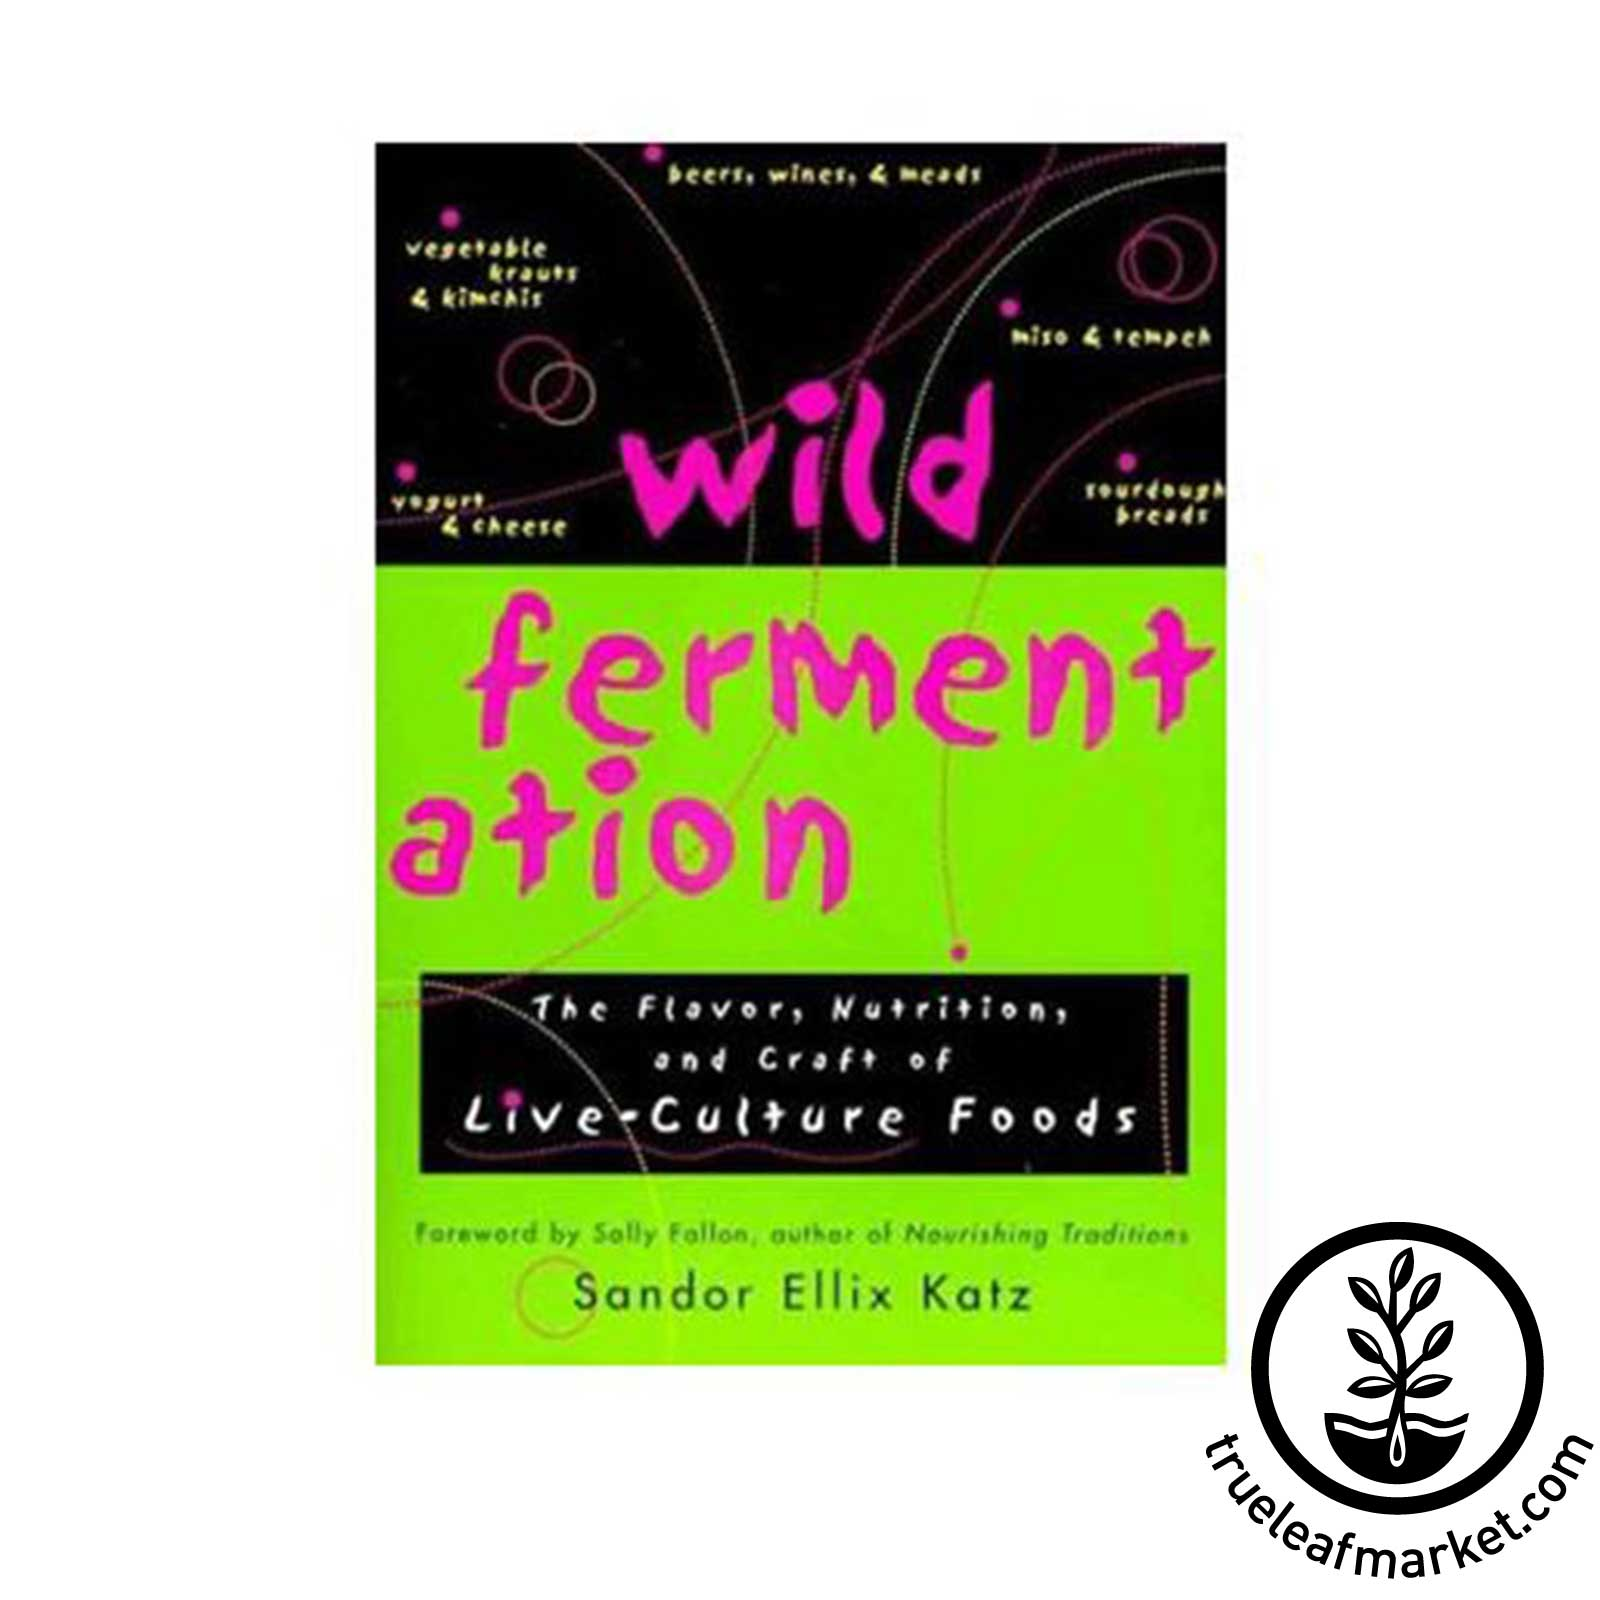 Wild Fermentation Book by Sandor Ellix Katz